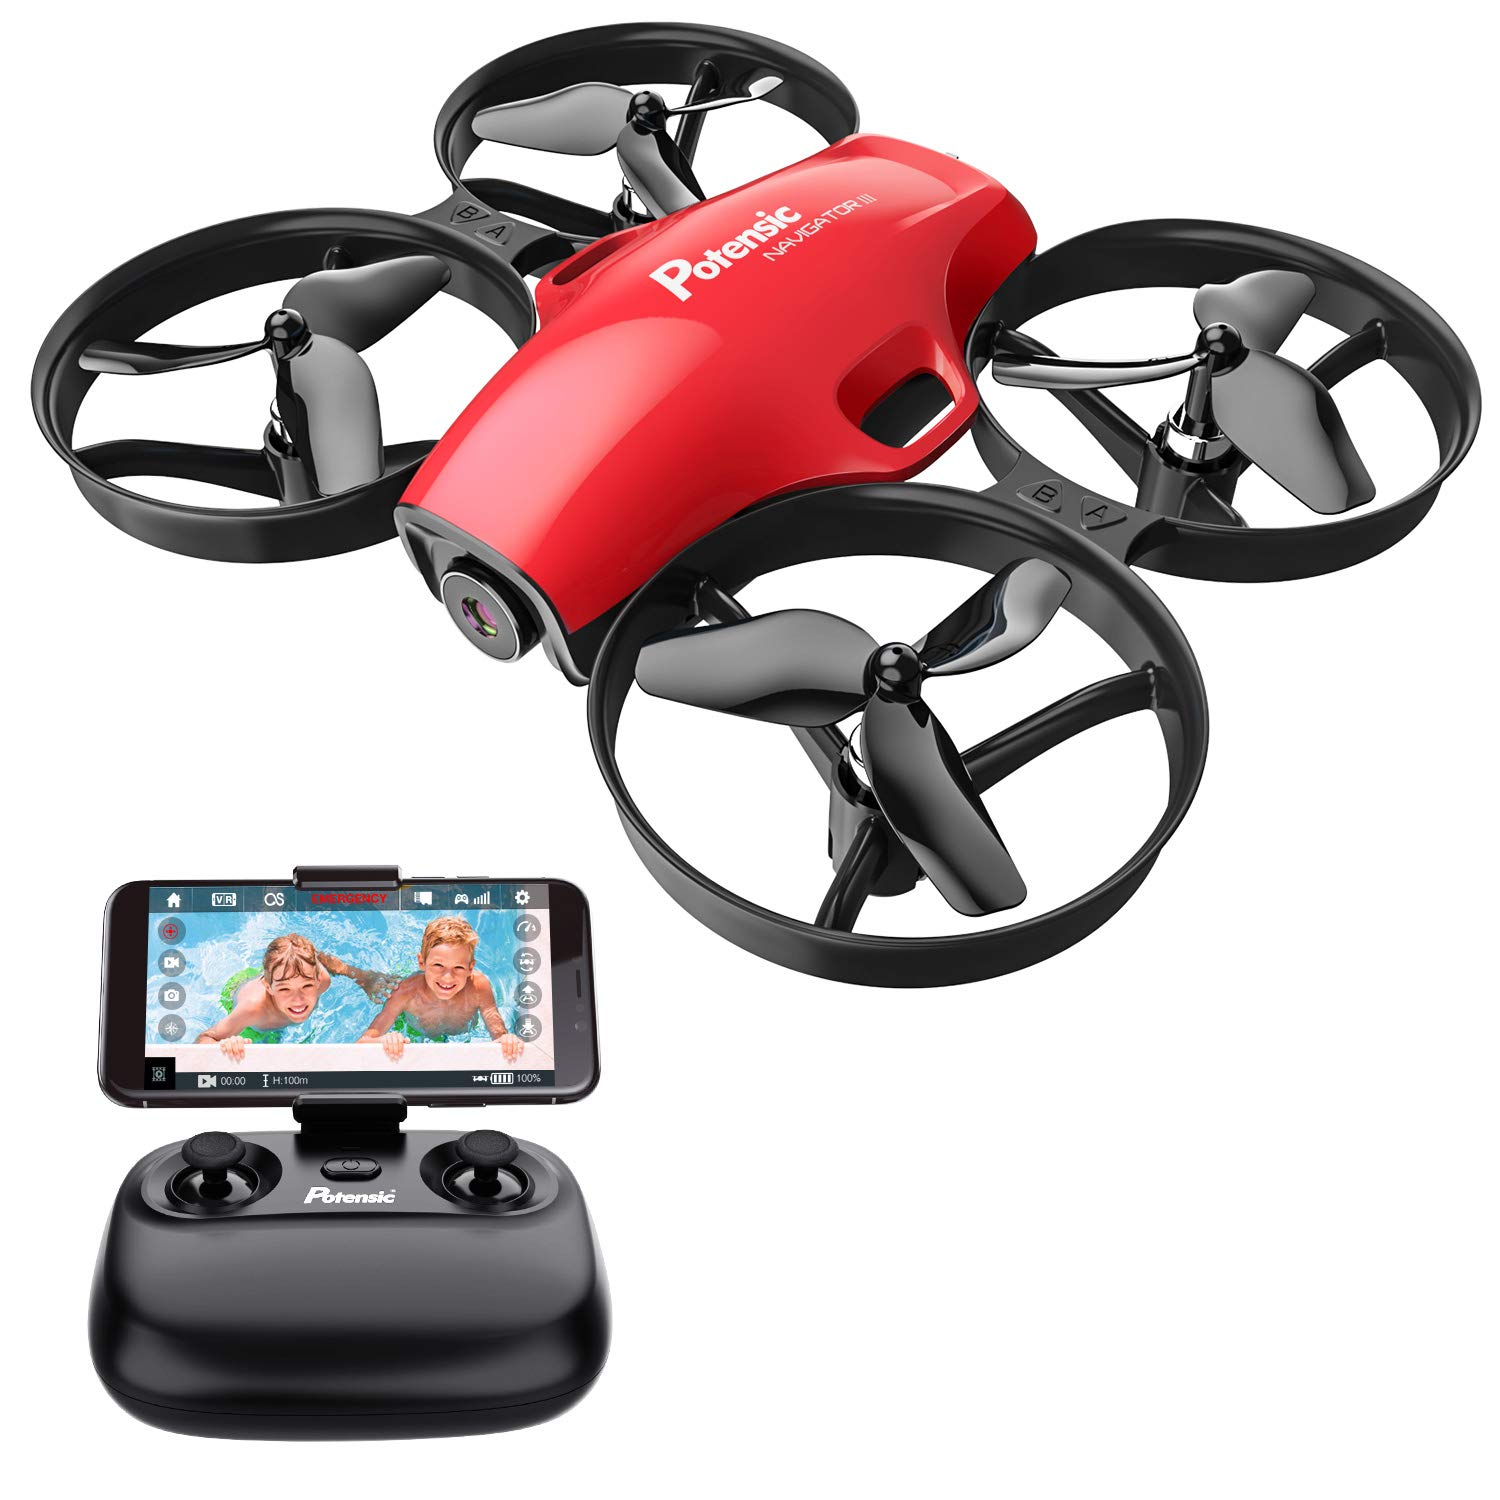 Potensic A30W FPV Drone with Camera, Mini RC Nano Quadcopter with Camera, Auto Hovering, Route Setting, Gravity Induction Mode and 500mAh Detachable Battery (red) by Potensic